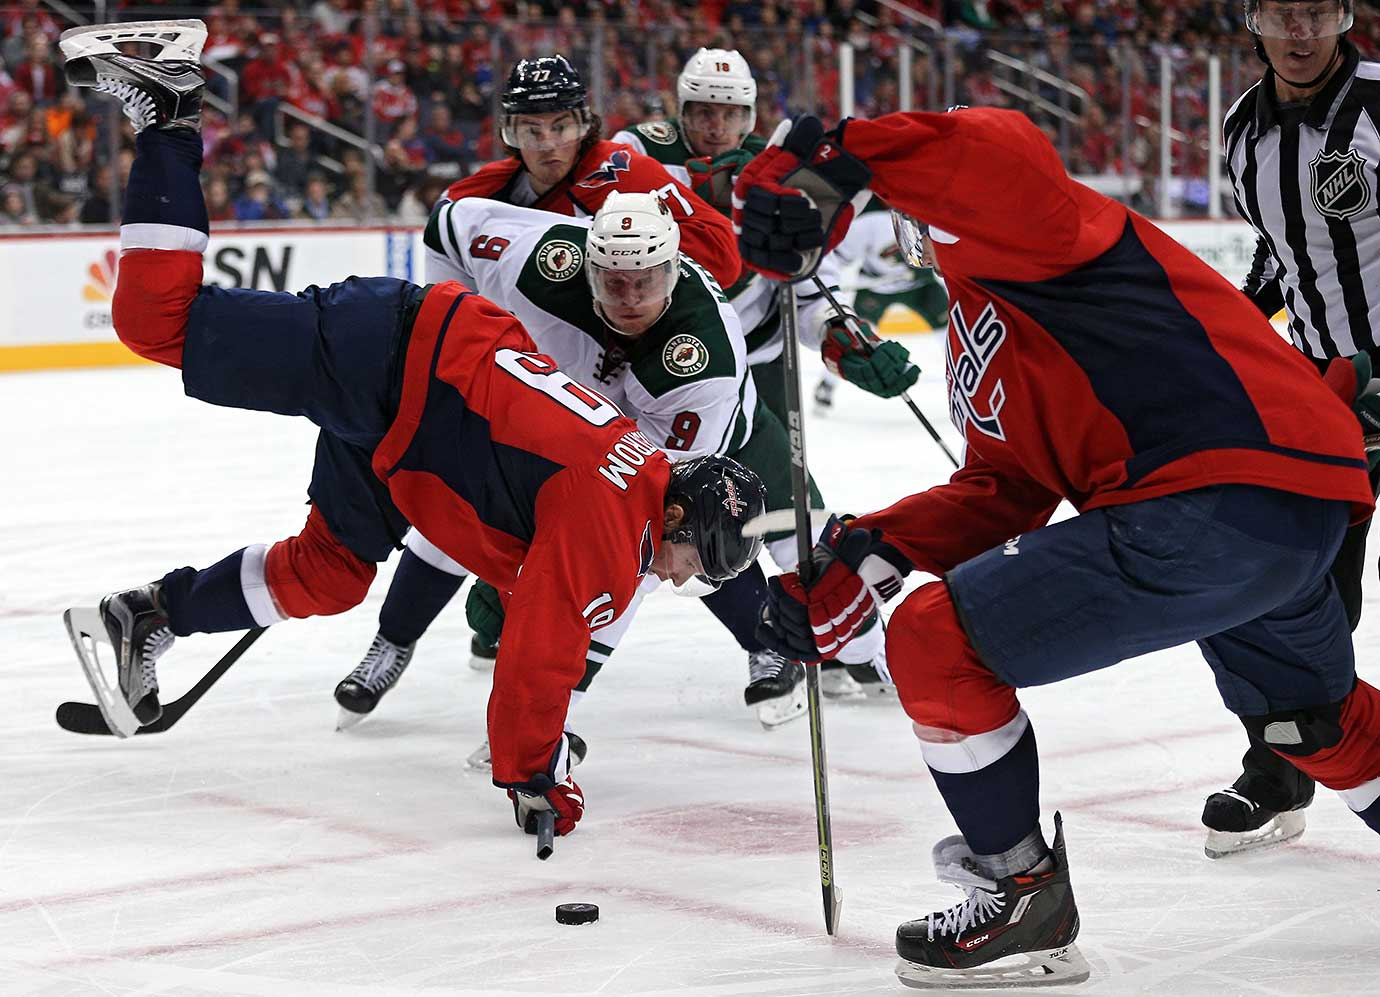 Nicklas Backstrom of the Washington Capitals is upended by Mikko Koivu of Minnesota.